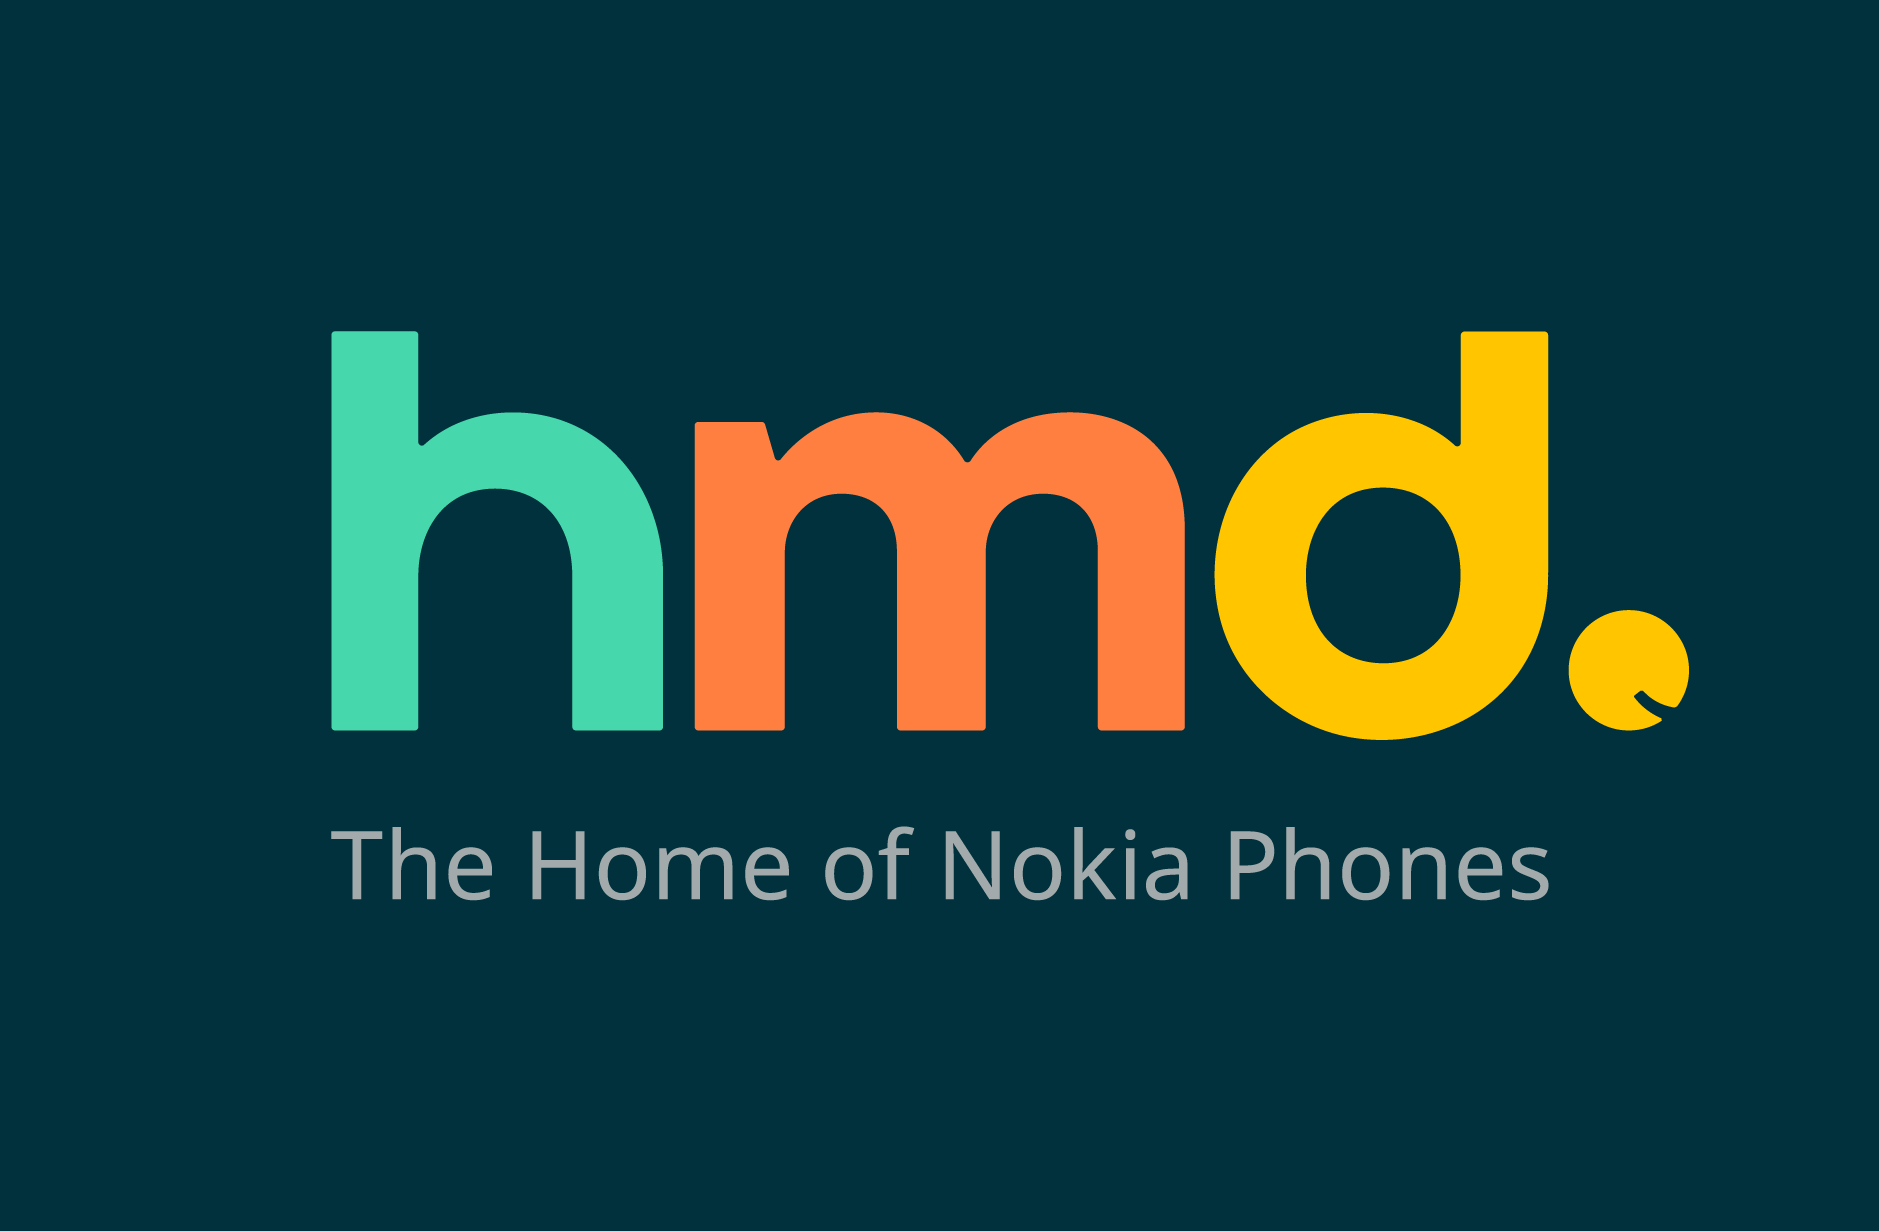 HMD Global to move all user data to Finland, here's why